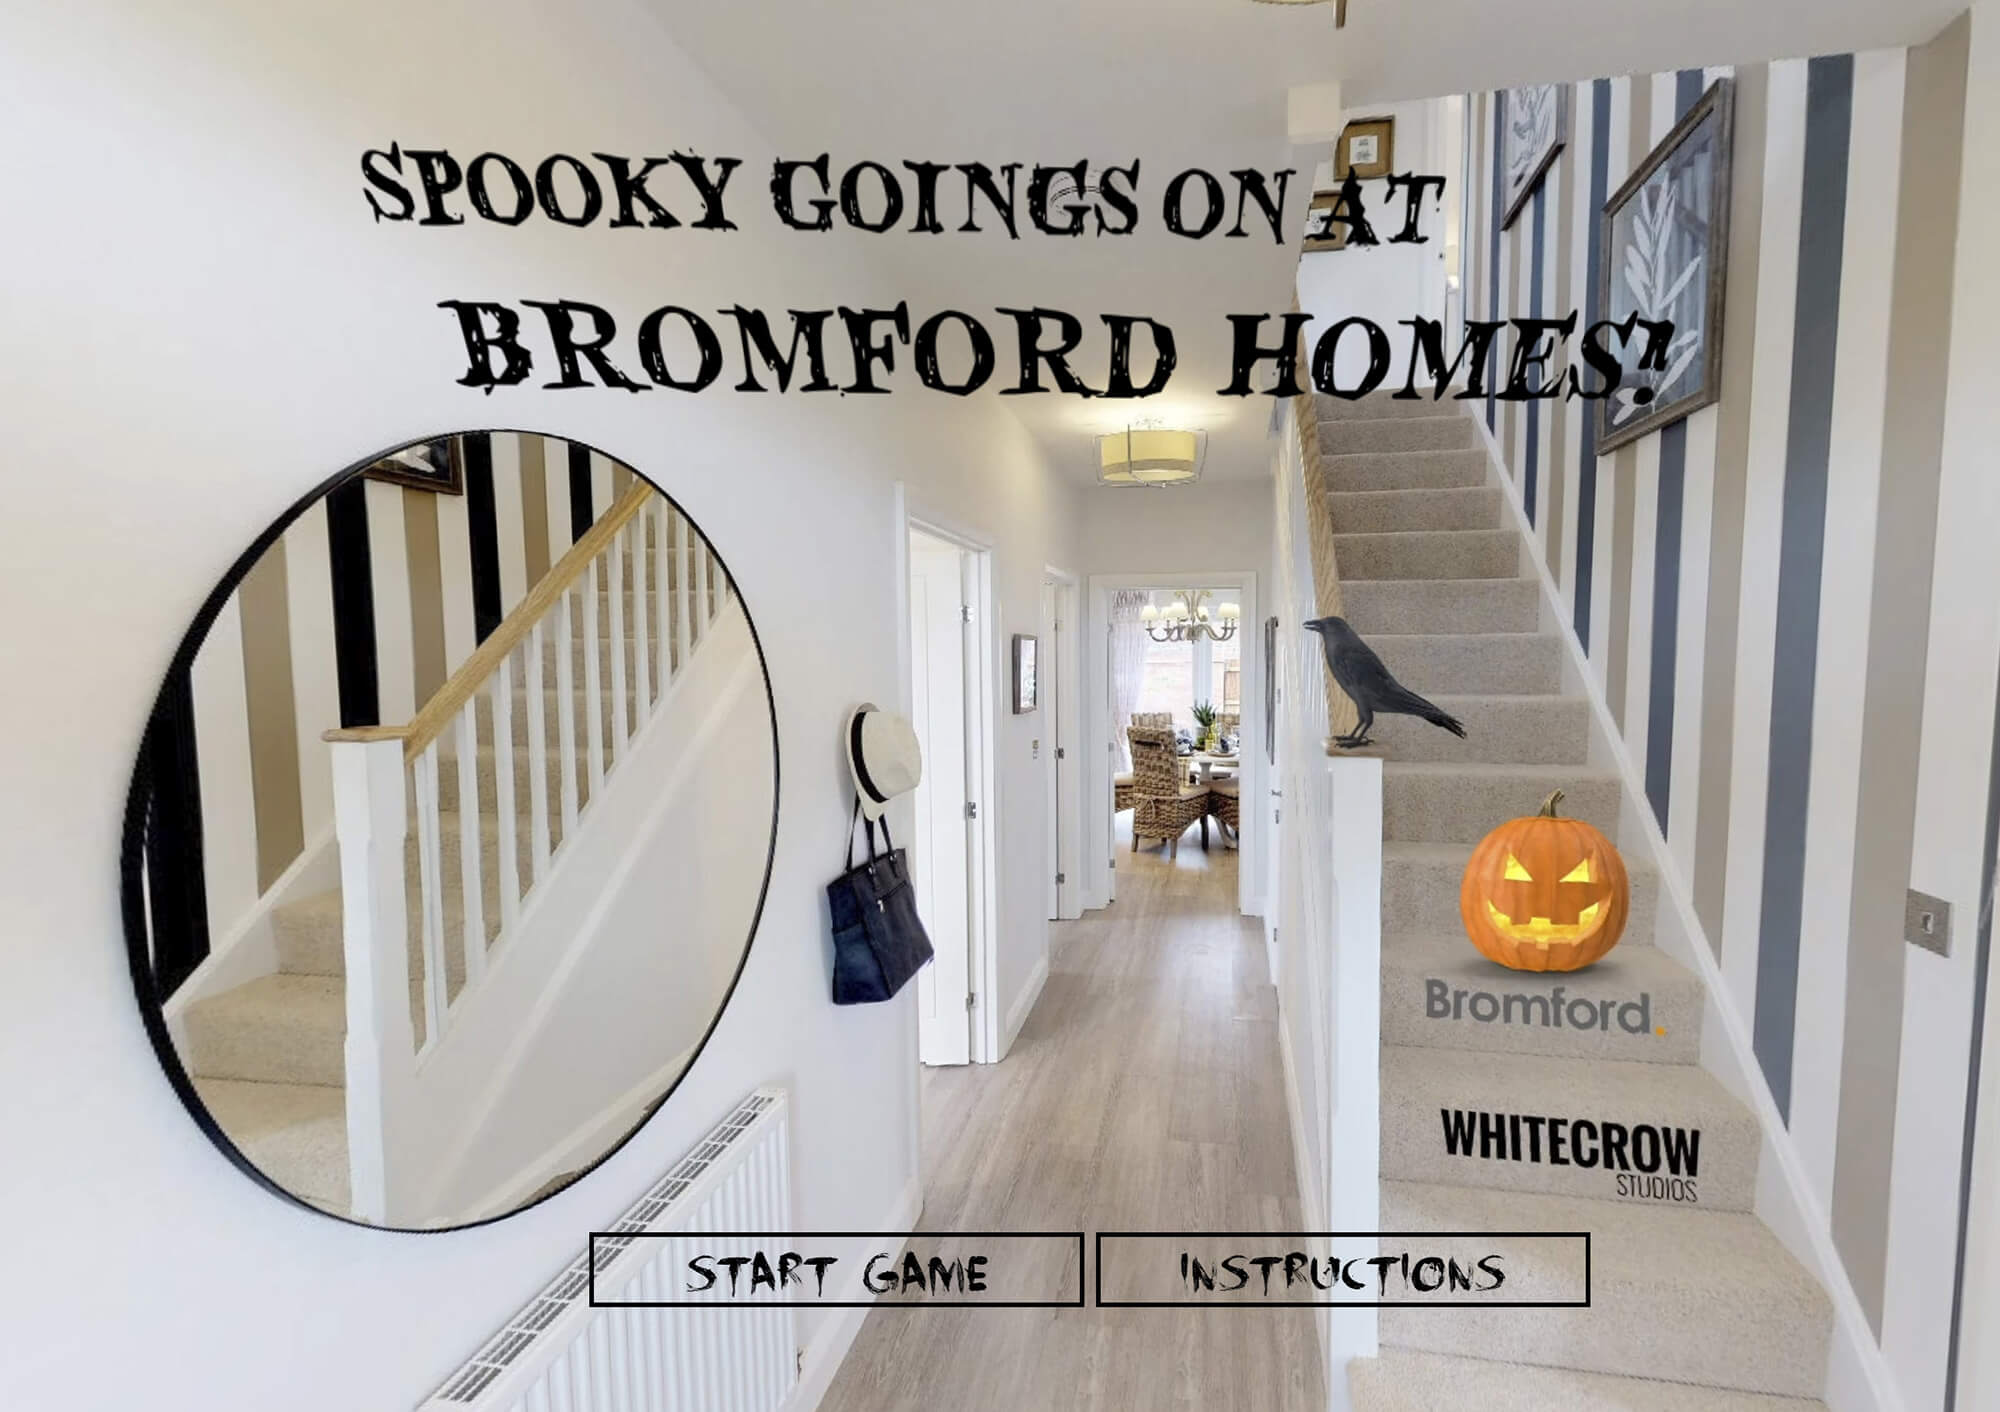 Spooky goings on at Bromford Homes!